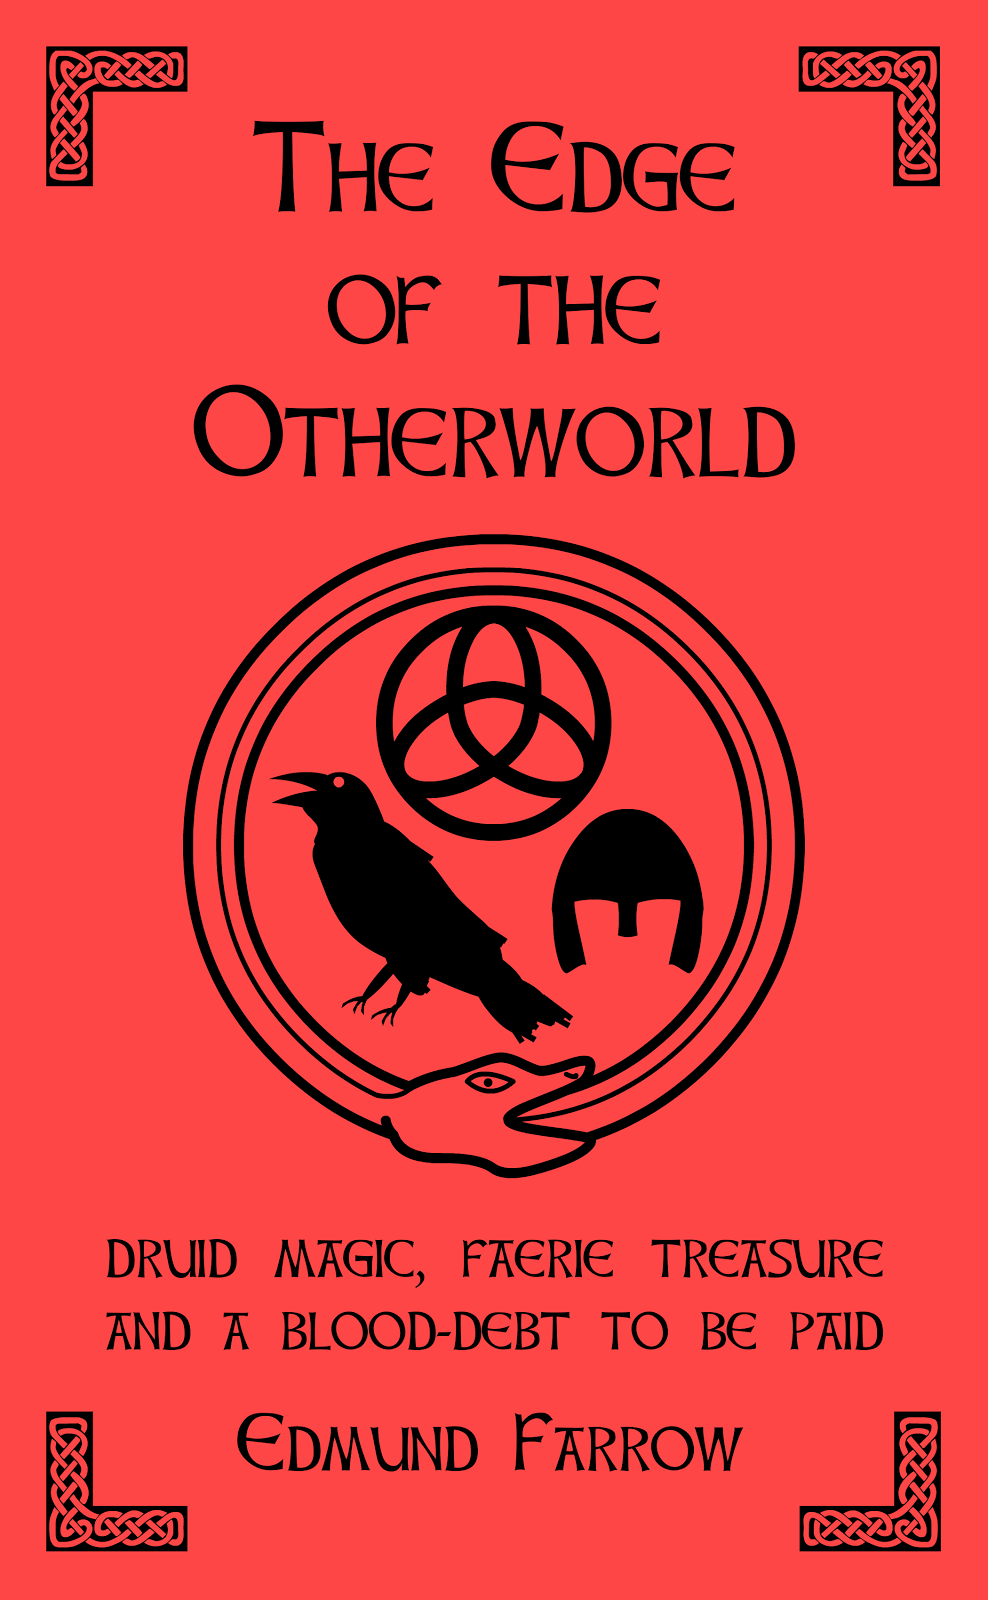 The Edge of the Otherworld